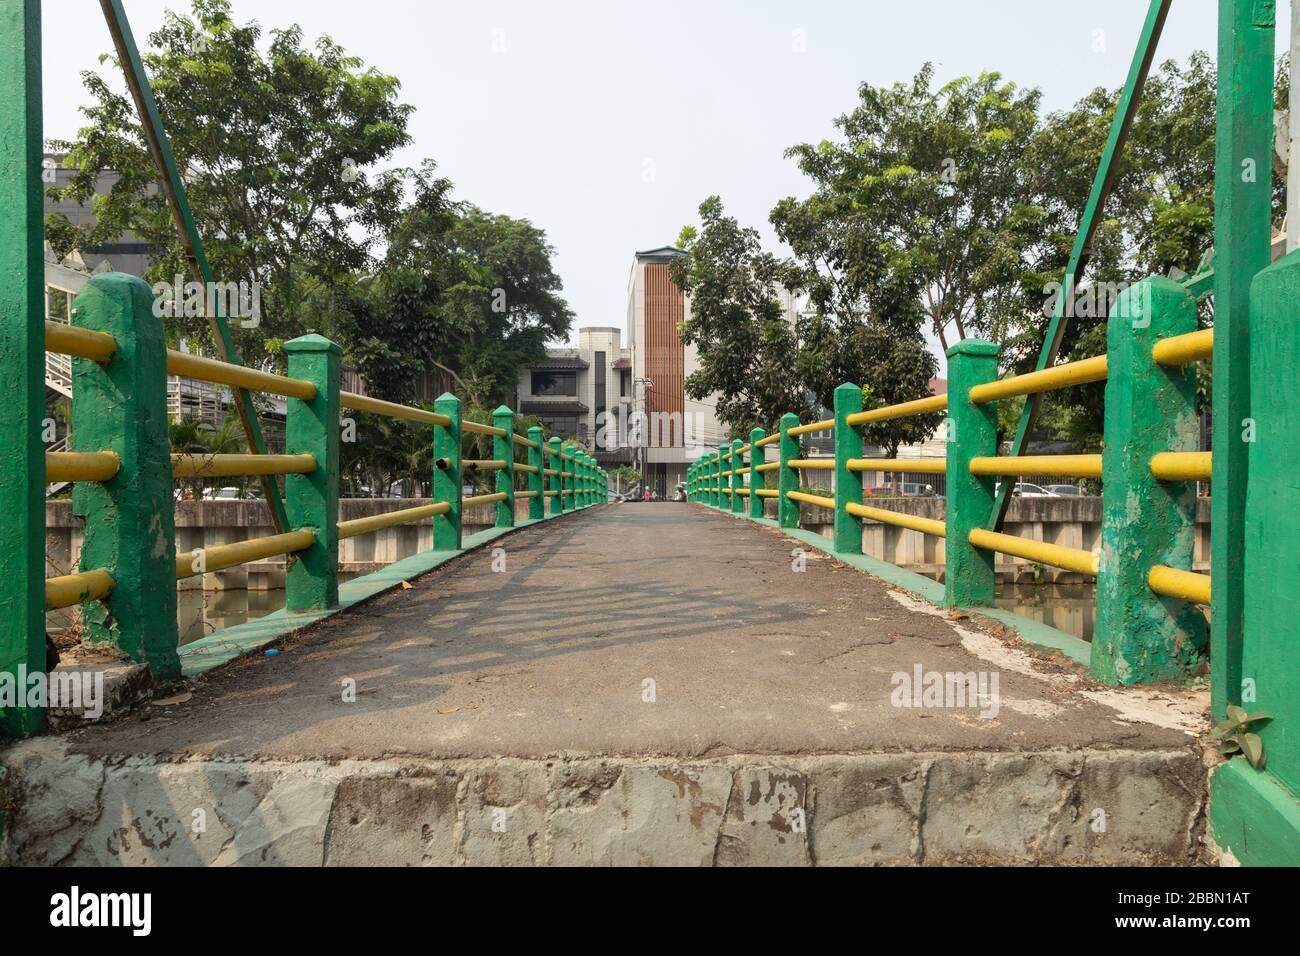 Jakarta, Indonesia - July 13, 2019: Footbridge exclusively for pedestrians, with a green painted railing, allows passage in Kartini Raya street. Stock Photo